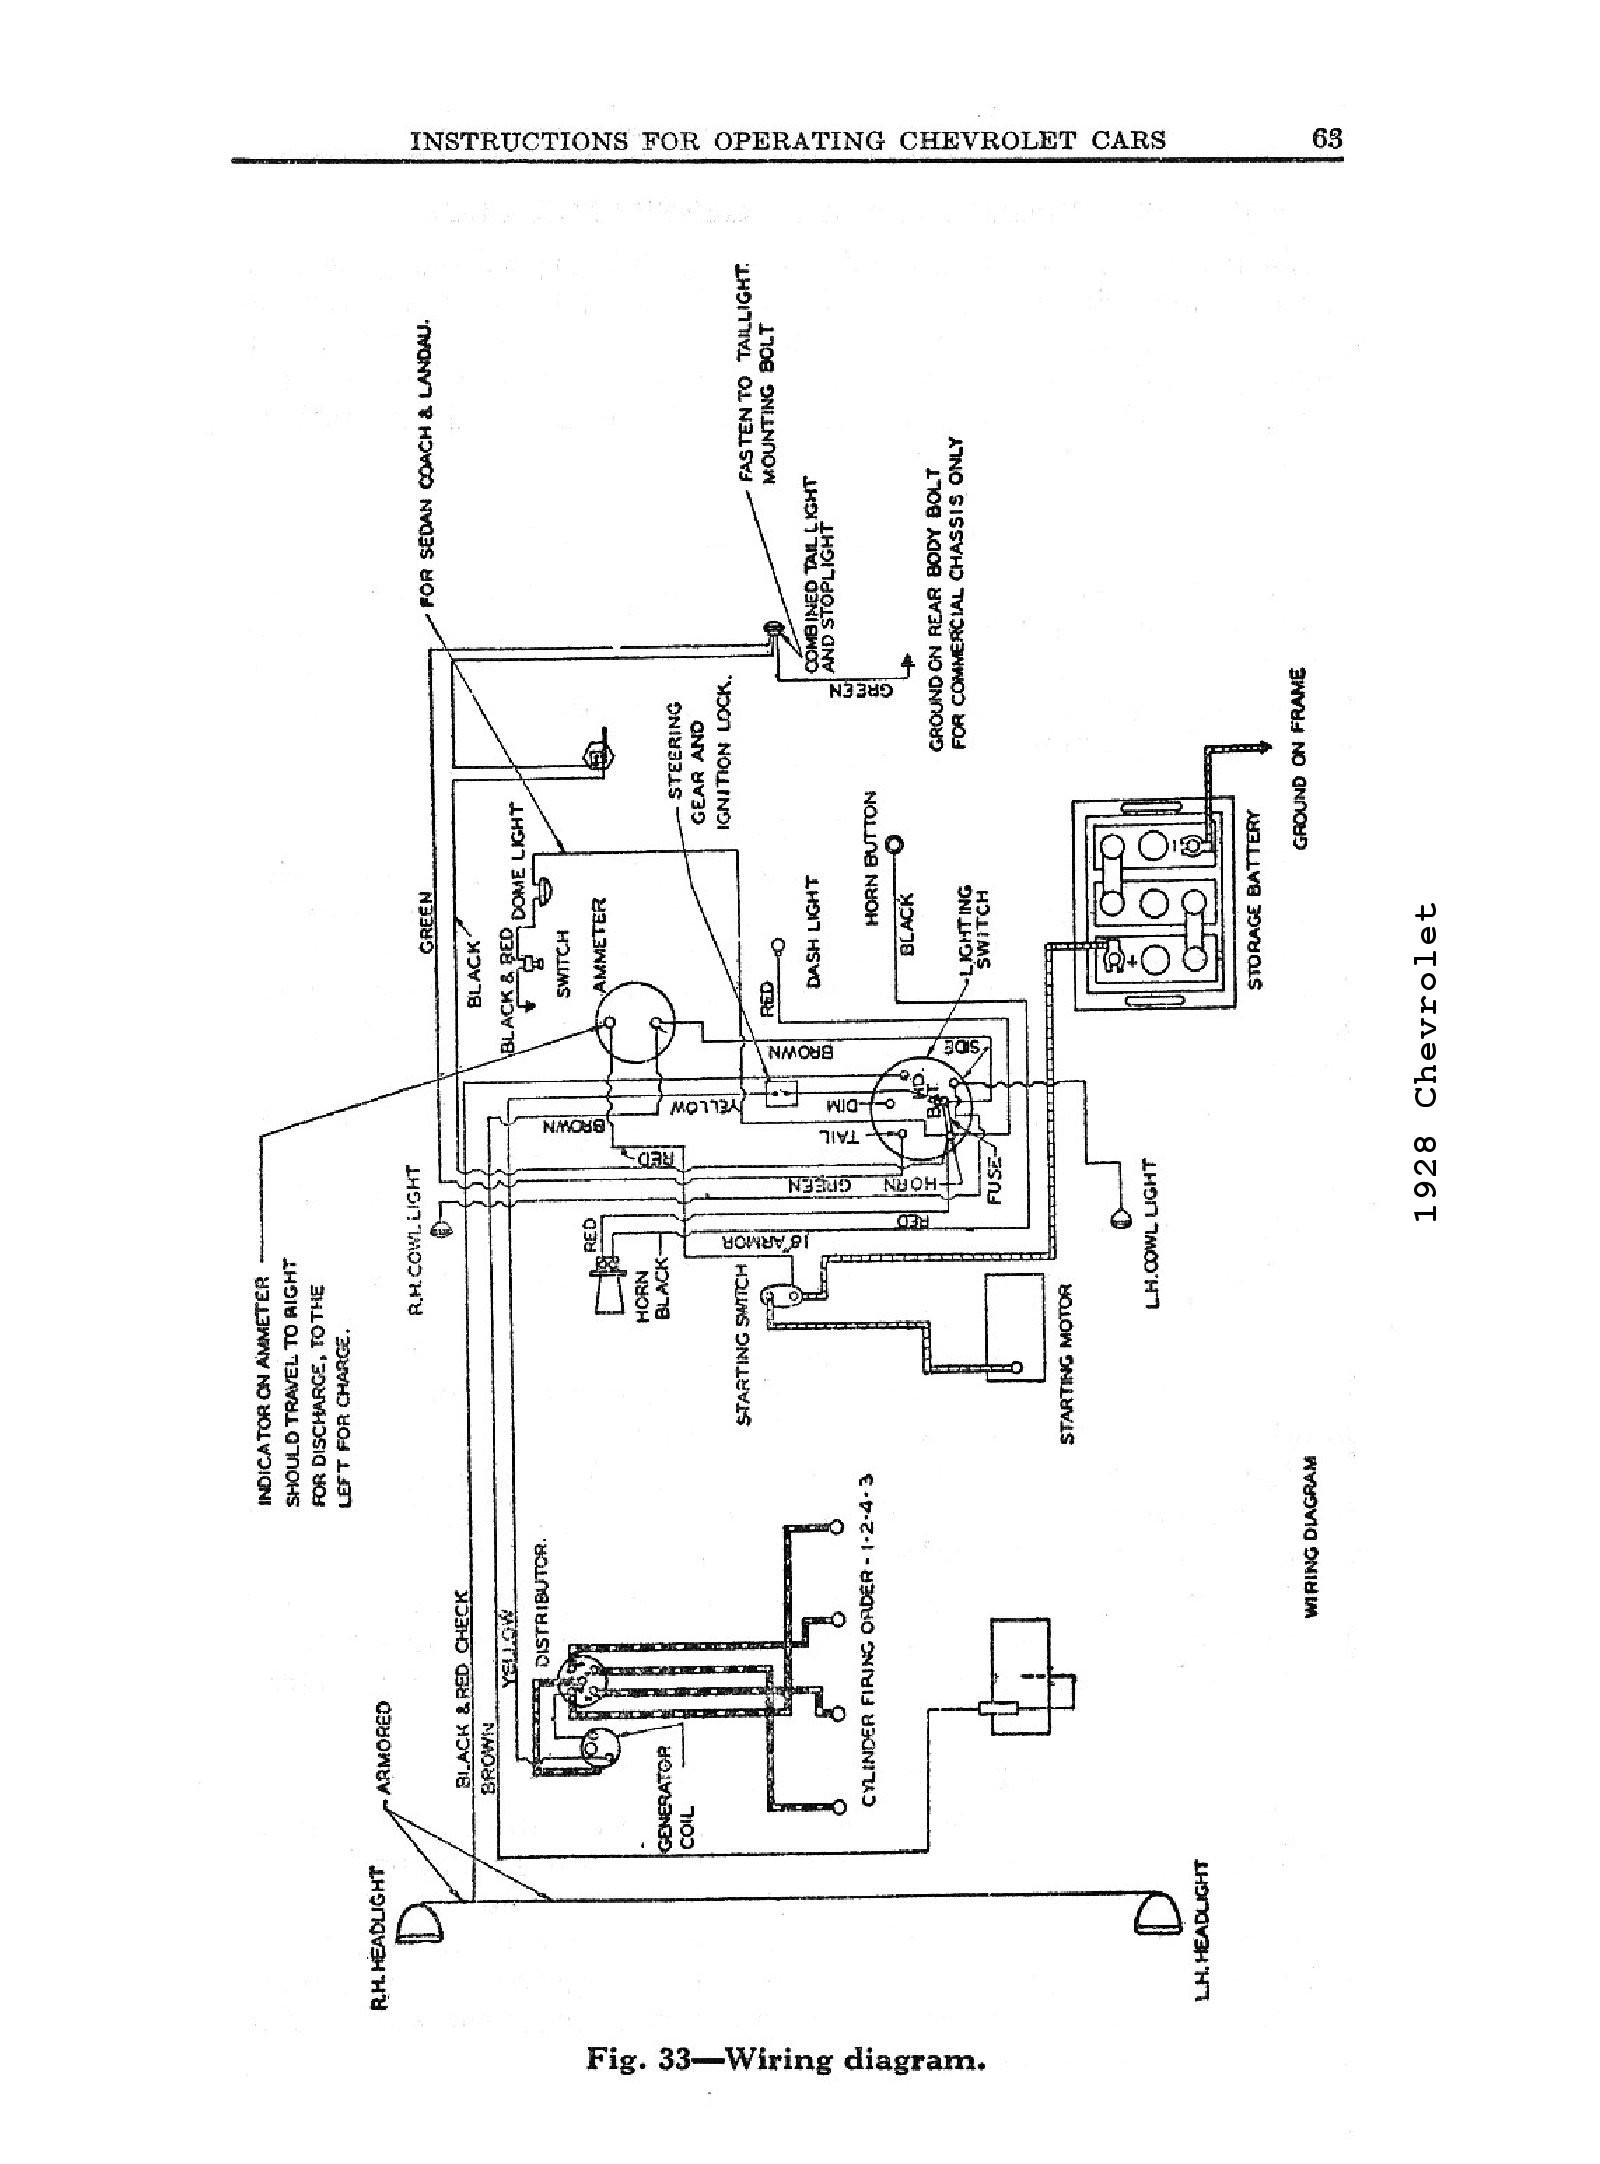 350 Engine Firing Order Diagram Chevy Hei Distributor Wiring Diagrams Of